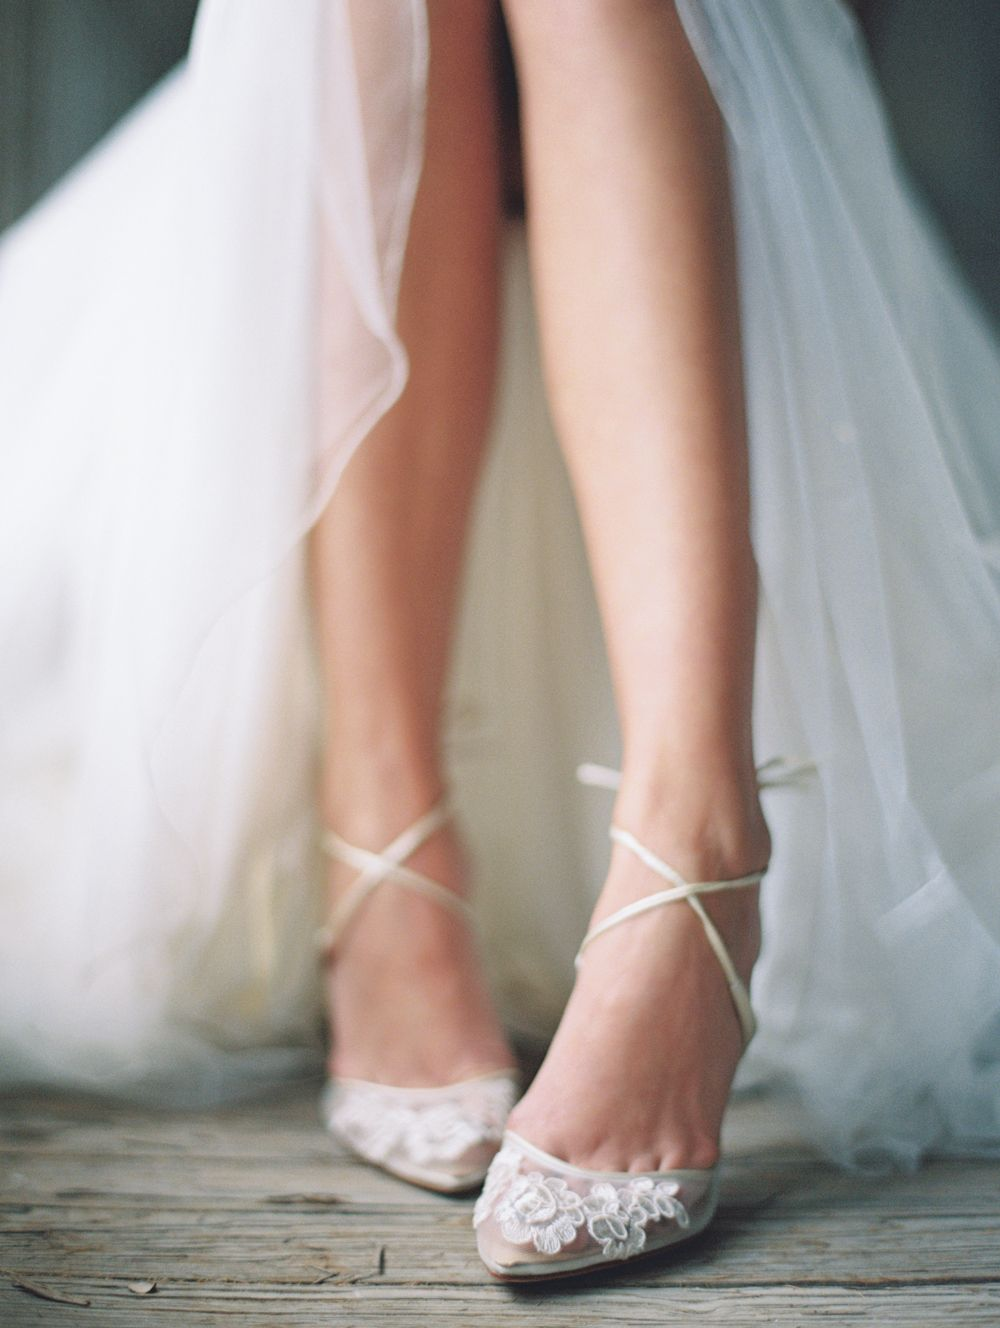 a9d919973d6fa ... bridal sandals for your big day. Anita wedding heel with lace  embellishment and cross ankle straps by Bella Belle Photographer  Bethany  Erin